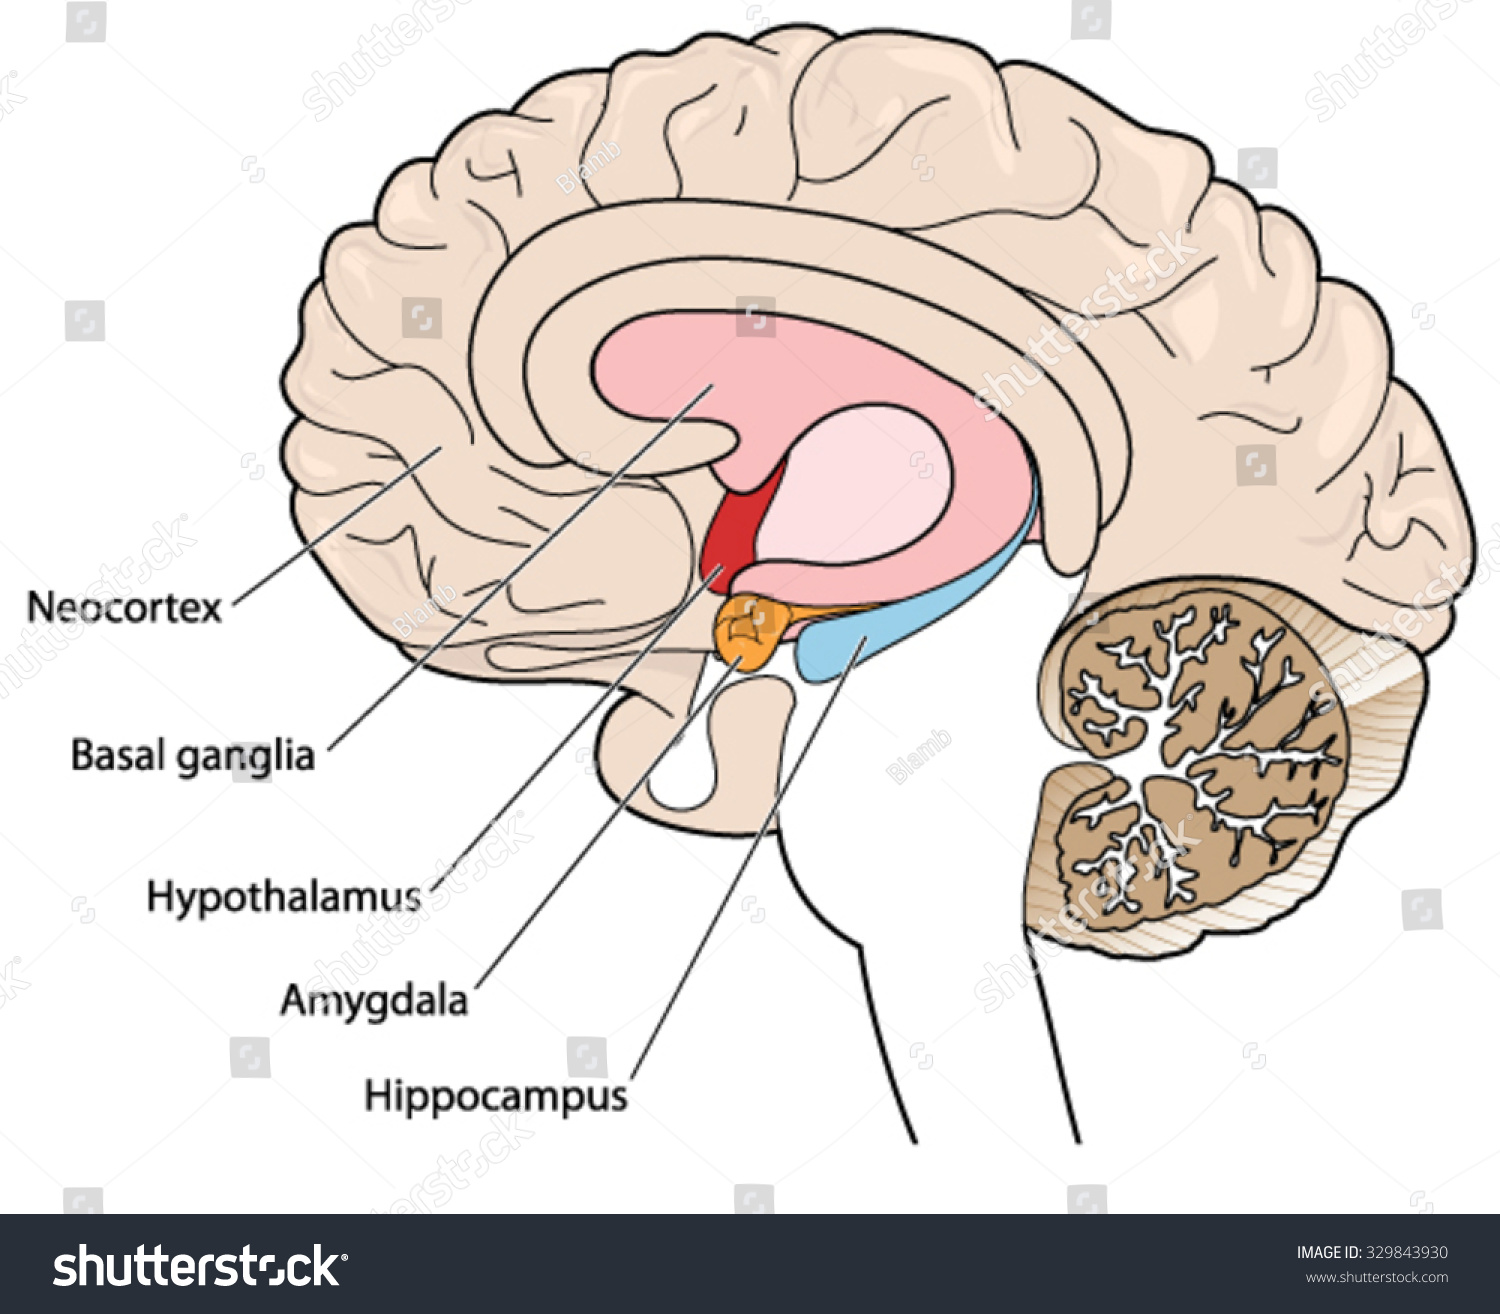 Brain cross section showing basal ganglia stock vector hd royalty the brain in cross section showing the basal ganglia hypothalamus amygdala and hippocampus ccuart Images